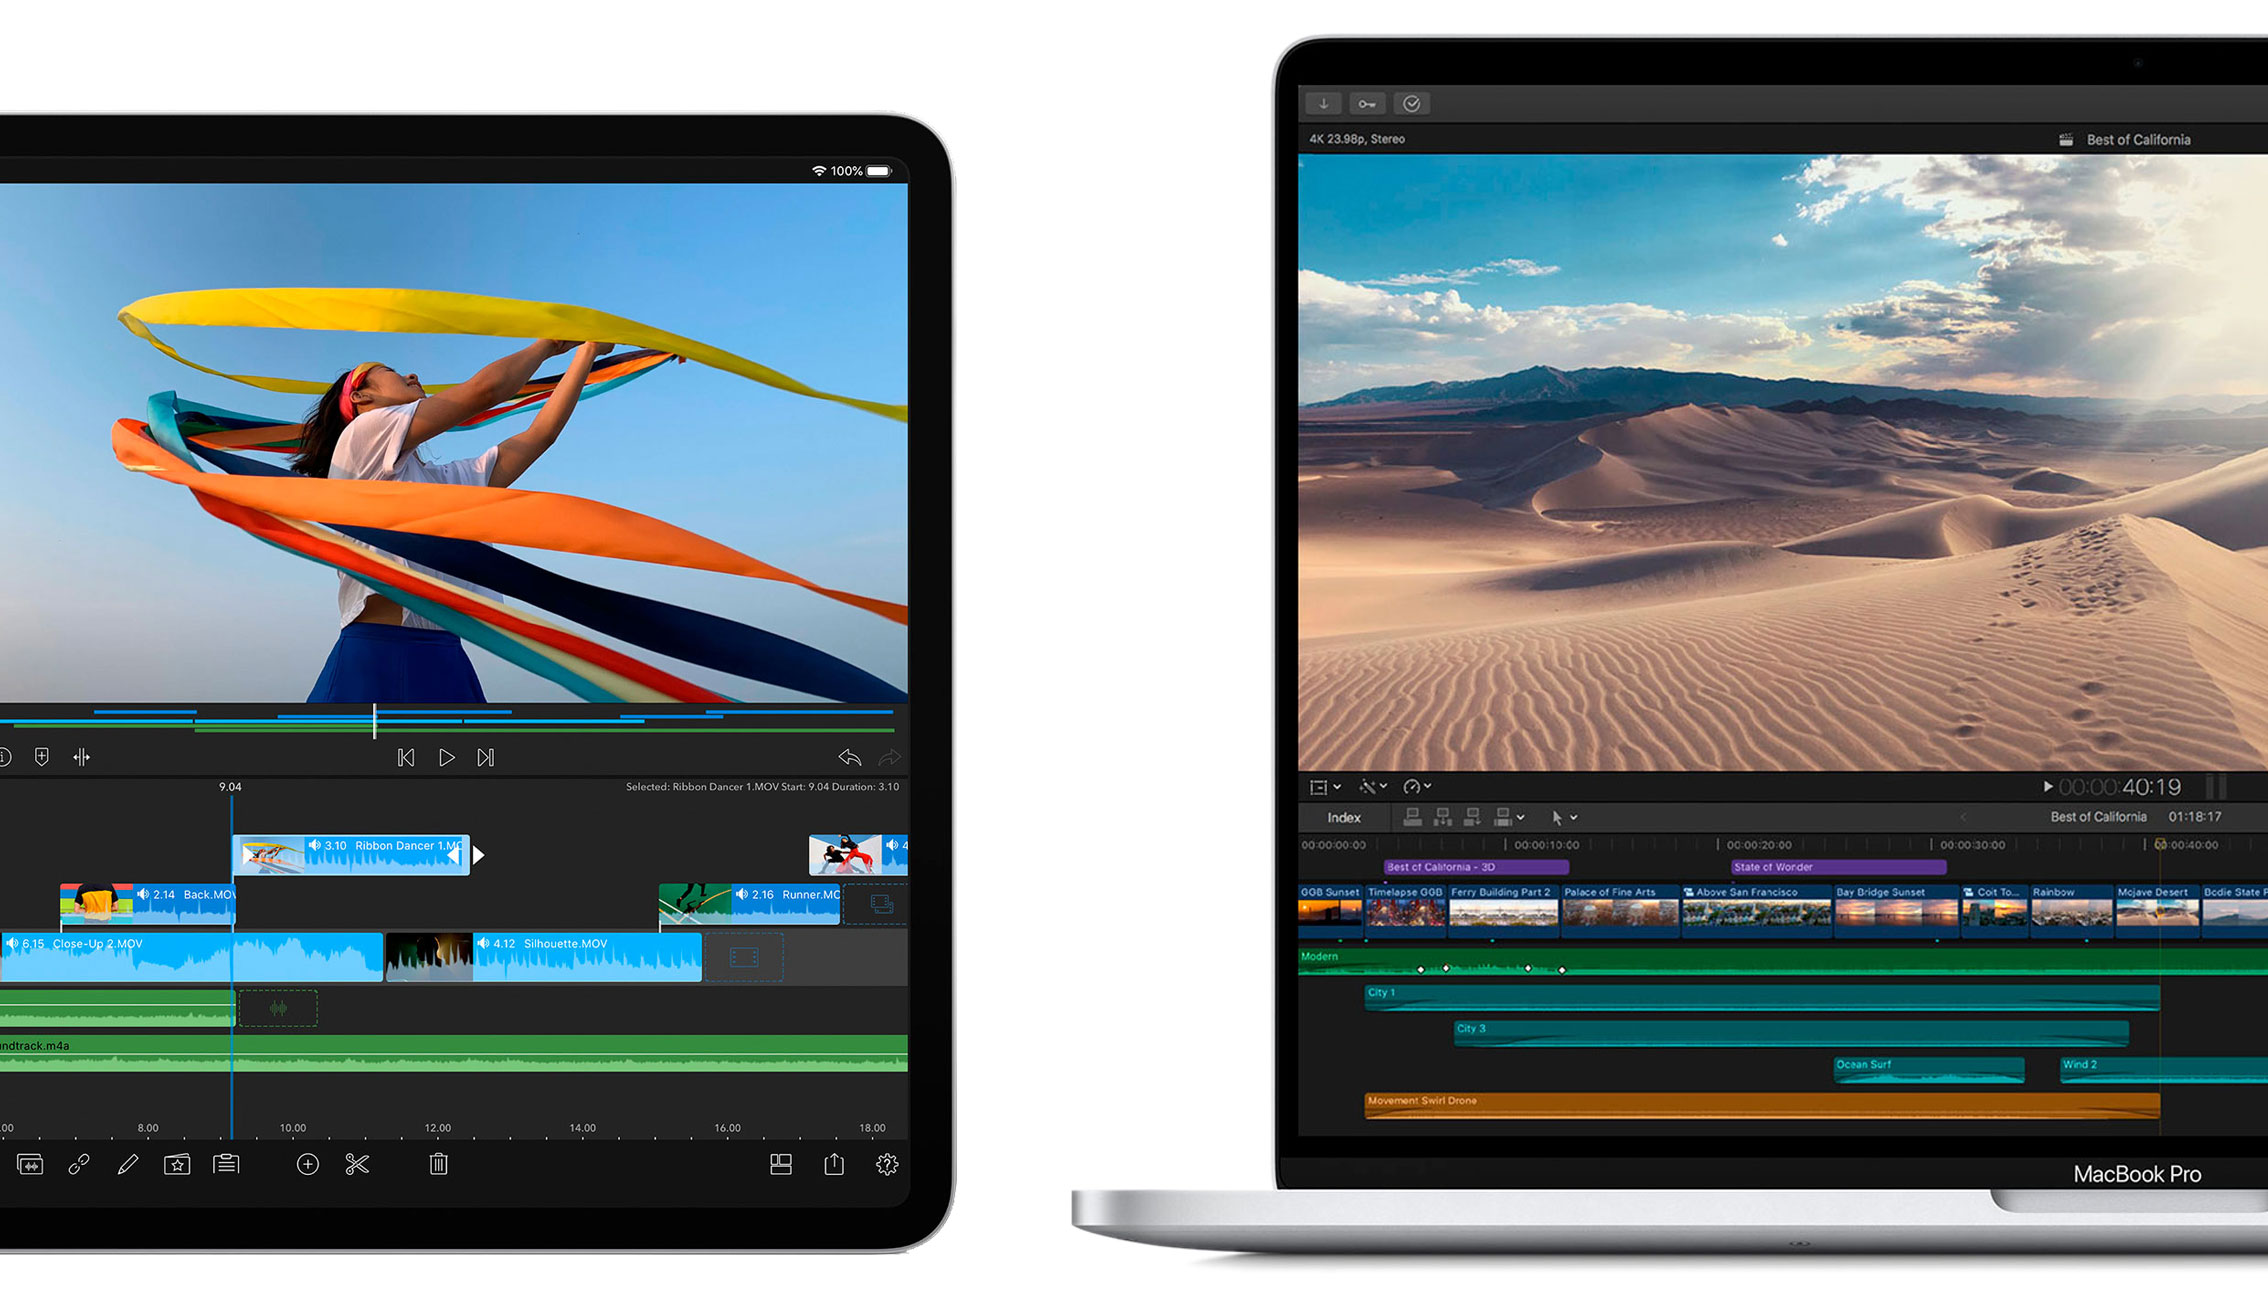 https://www.macfreak.nl/modules/news/images/zArt.iPadPro2020En16-inchMacBookPro.jpg